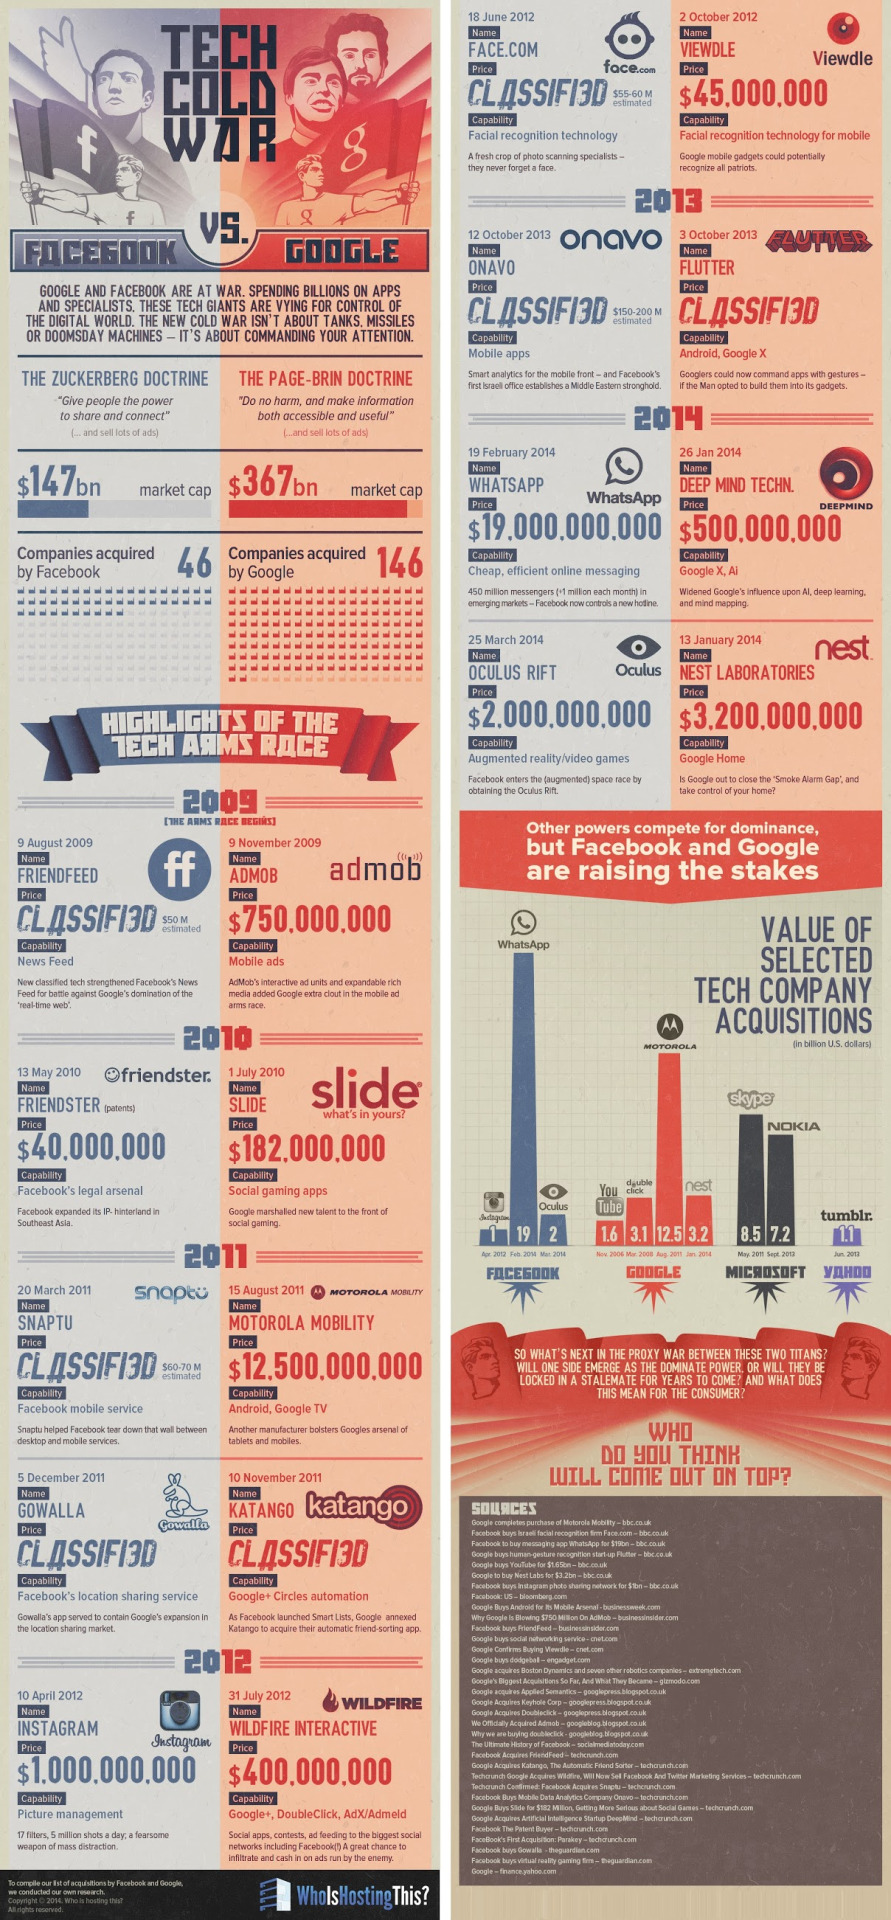 """Tech Cold War: Facebook vs. Google - infographic   To enlarge image:   i.imgur.com/3o3eZsk.jpg   """"Who is winning the tech cold war?  Spending billions on apps and specialists, these tech giants are vying for control of the digital world. The new cold war isn't about tanks, missiles or doomsday machines — it's about commanding your attention (and maybe the stratosphere).  There is always speculation and rumors of upcoming acquisitions for these two companies, but both have their own strategies for growth. Google is focusing on foreign investments, while Facebook path seems pointed towards becoming a media platform.""""  Take a look at this infographic from whoishostingthis team that presents the timeline comparison between Google and Facebook acquisitions.   Pin it:   http://www.pinterest.com/pin/381539399654501455/    Source:  http://www.whoishostingthis.com/blog/2014/05/27/tech-cold-war-facebook-vs-google/    #Google  #technology  #facebook   http://click-to-read-mo.re/p/7qzc/53413f12"""